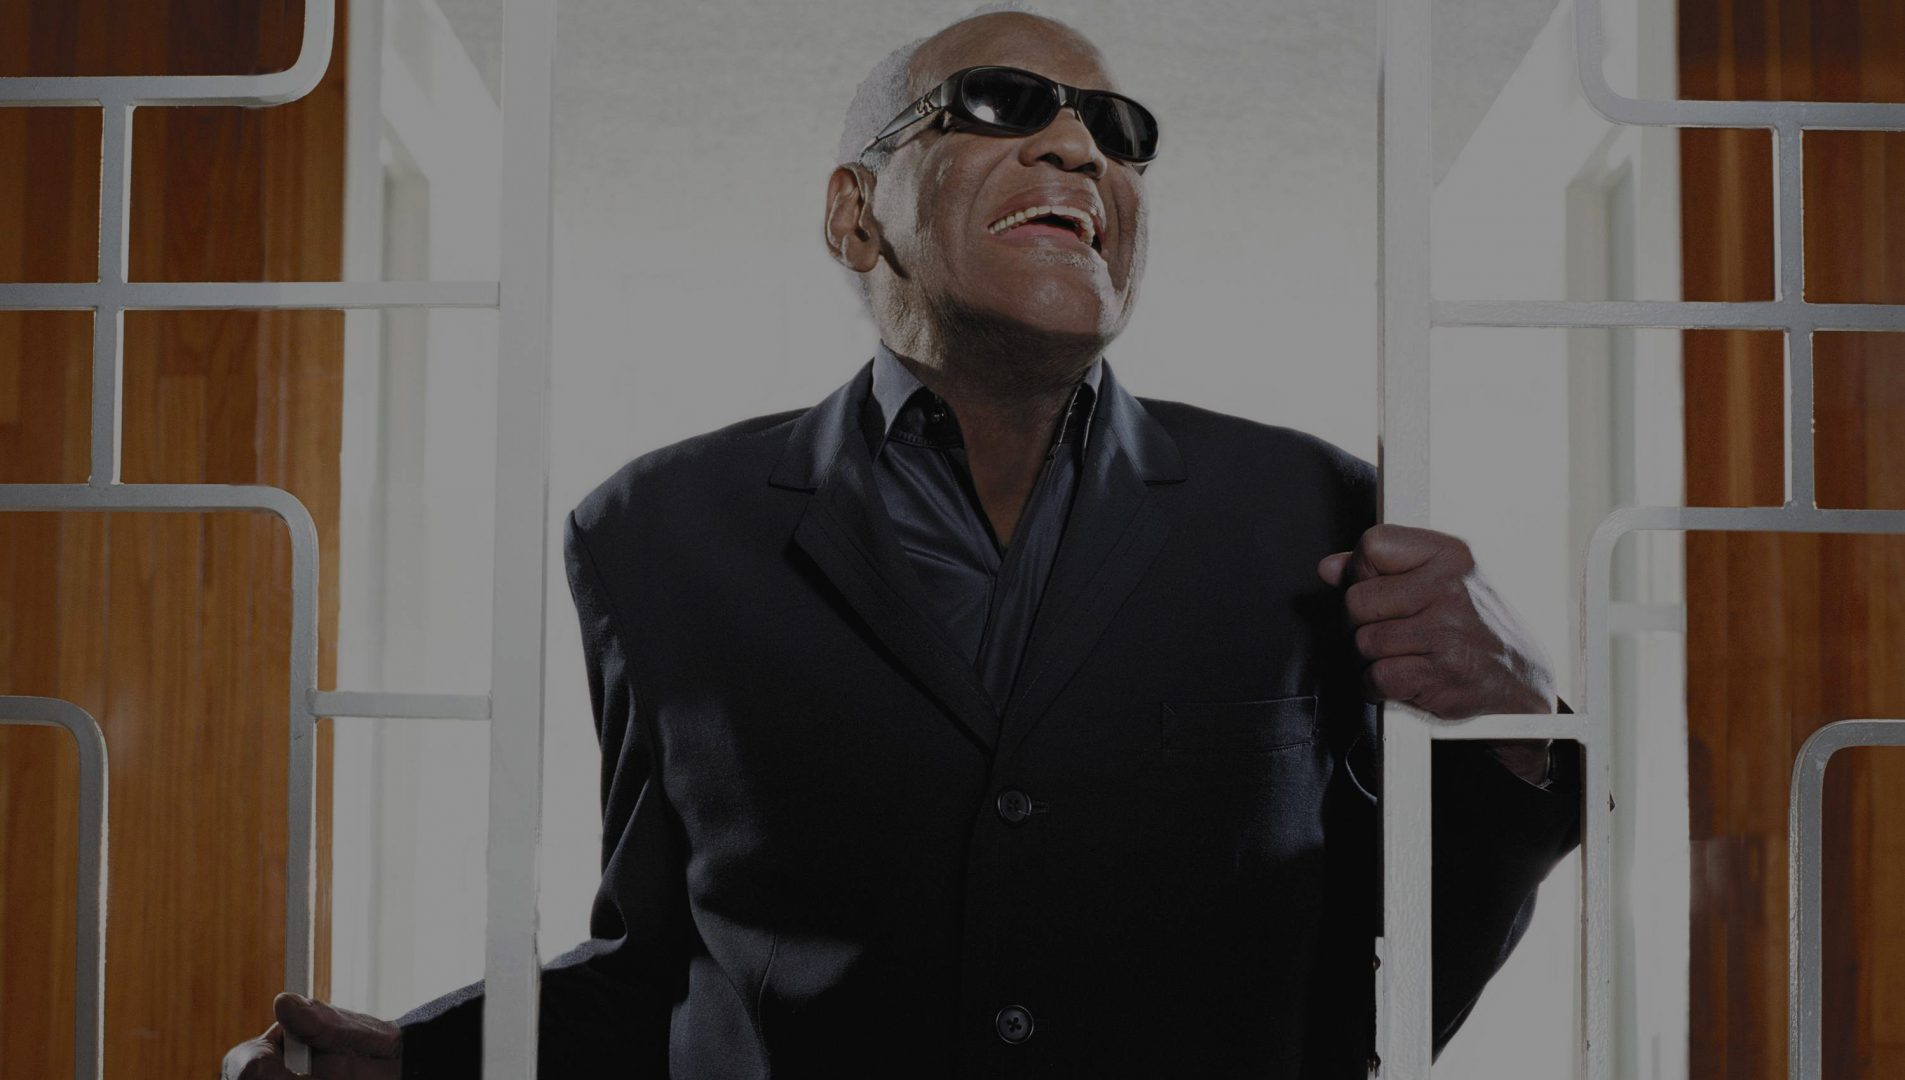 Ray Charles smiling in a collared shirt and sports jacket wearing his trademark sunglasses.